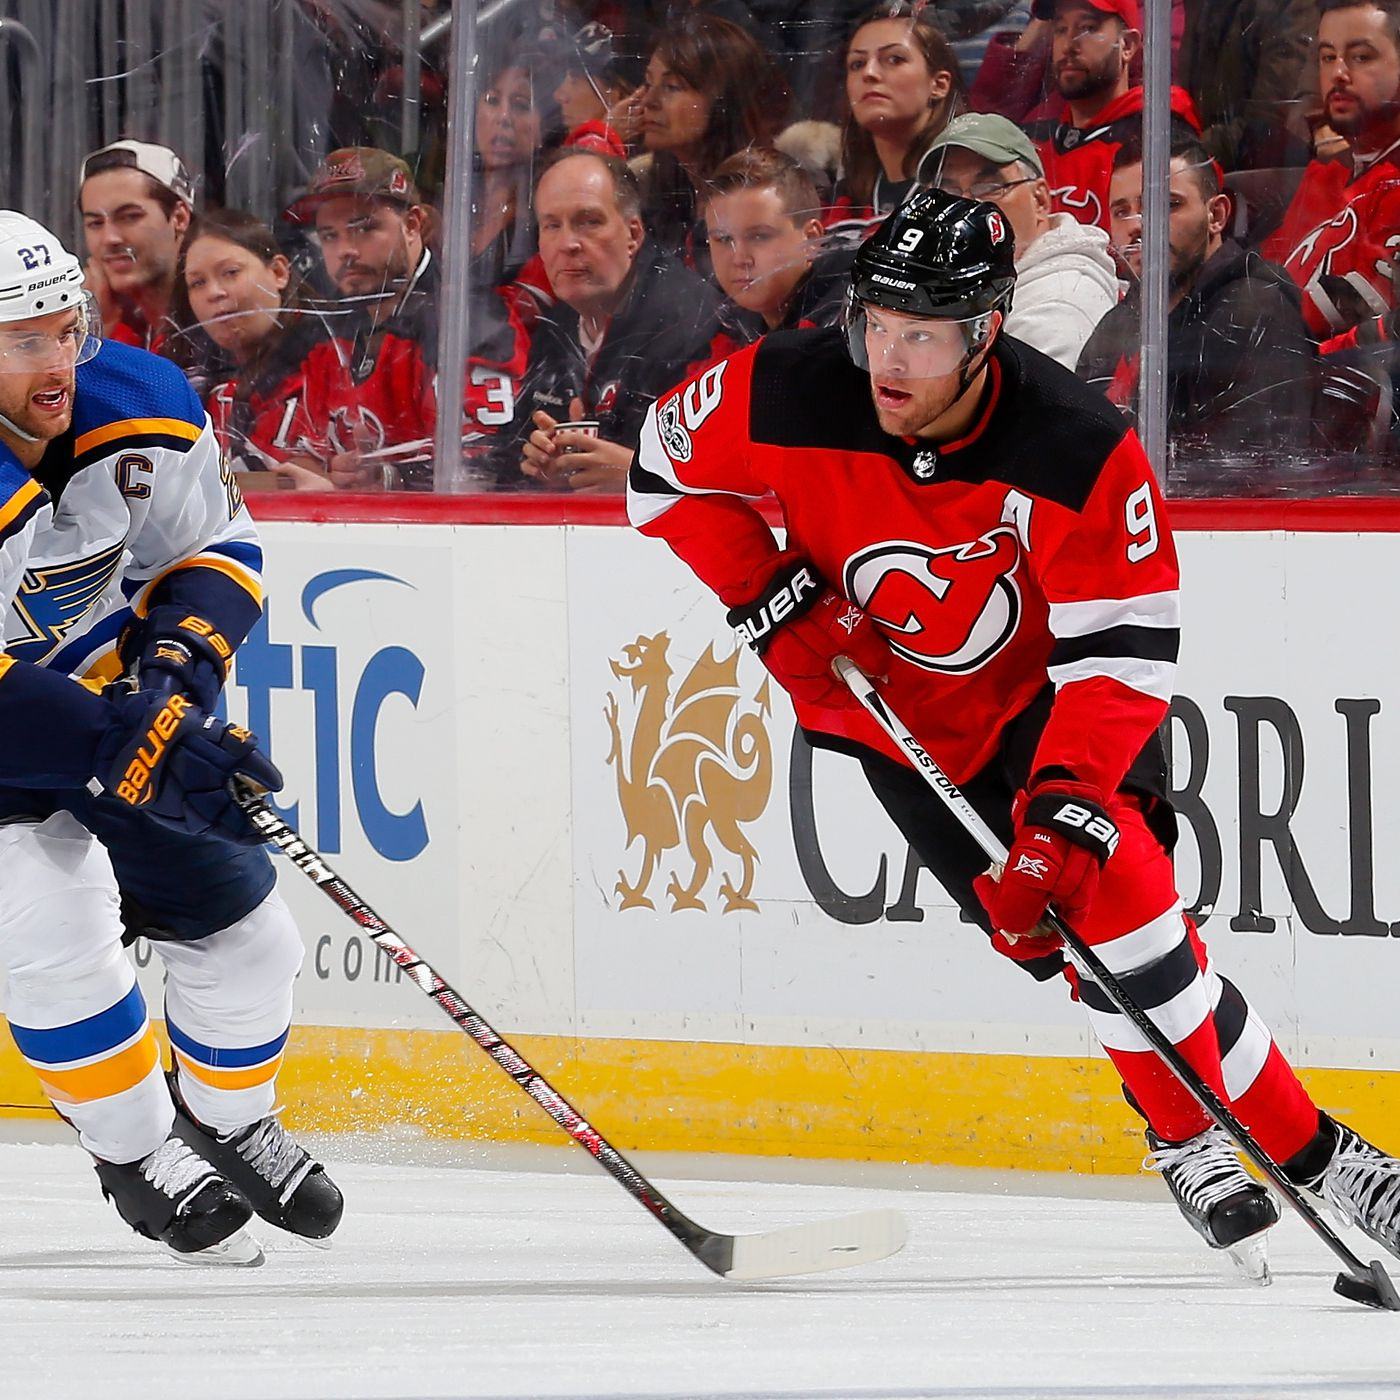 Taylor Hall Or Alex Pietrangelo Who Would You Rather Have Mile High Hockey